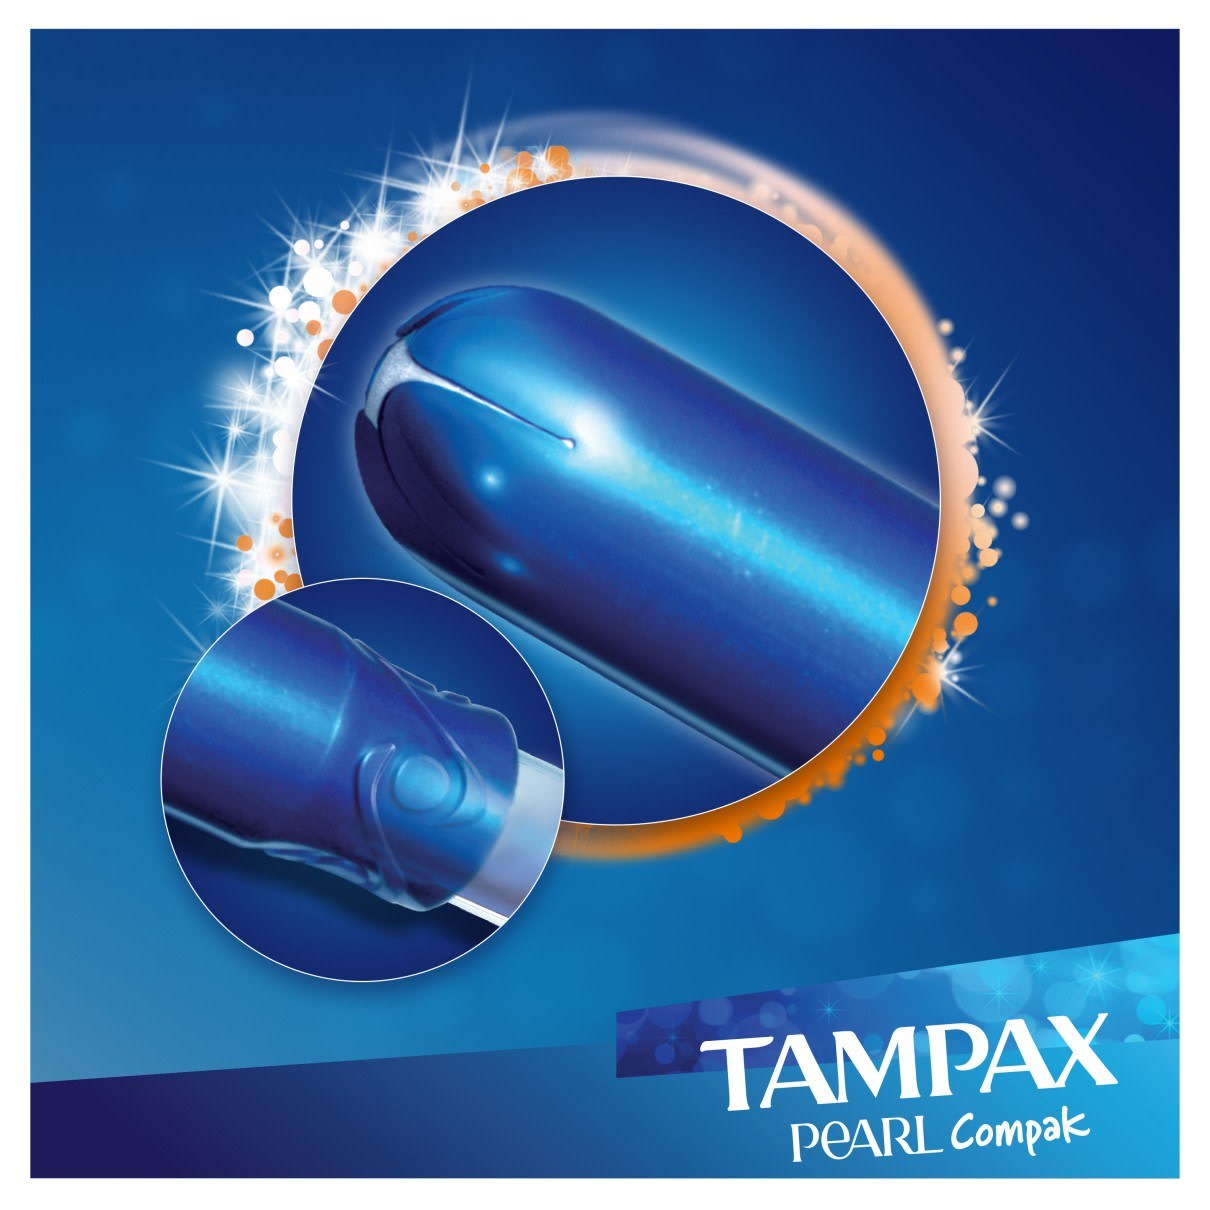 TAMPAX Pearl Compak Super Plus